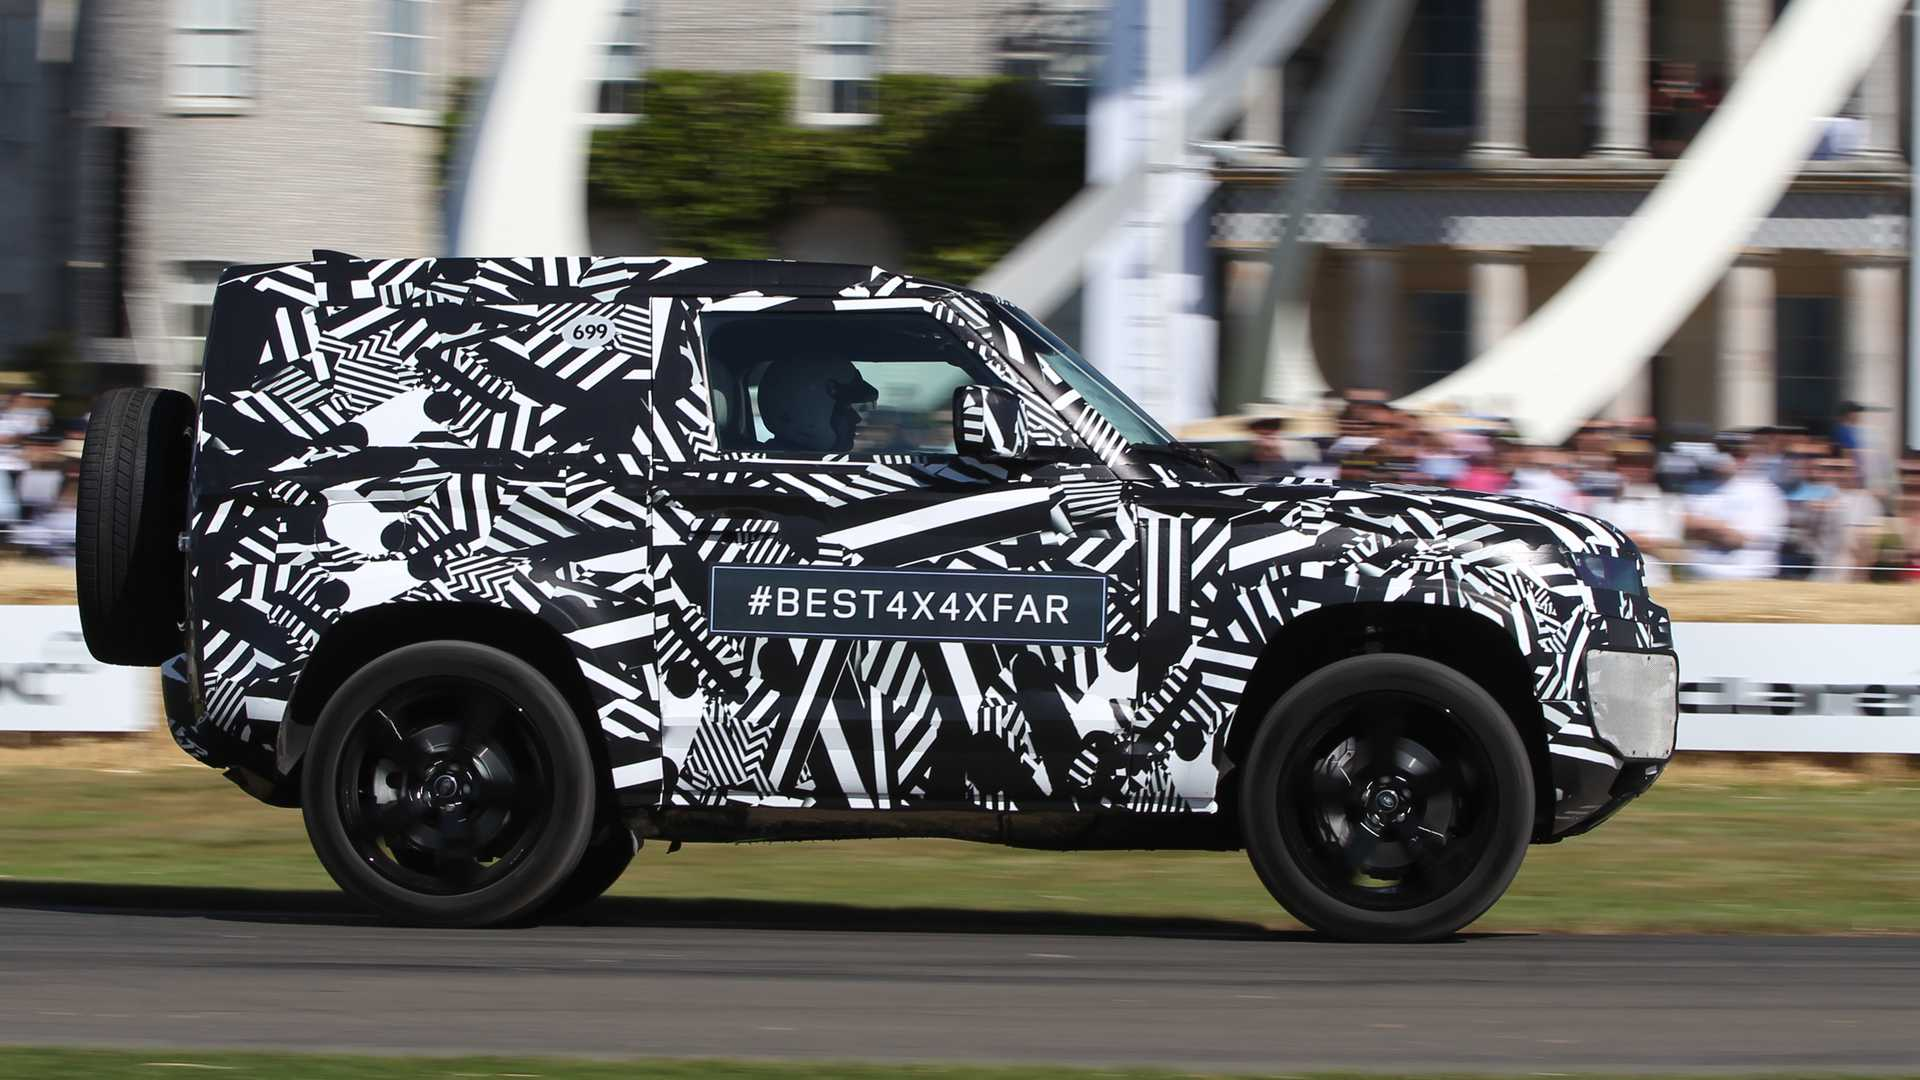 2020 Land Rover Defender Release Date >> 2020 Land Rover Defender Driven By The Duke Of Richmond At Goodwood